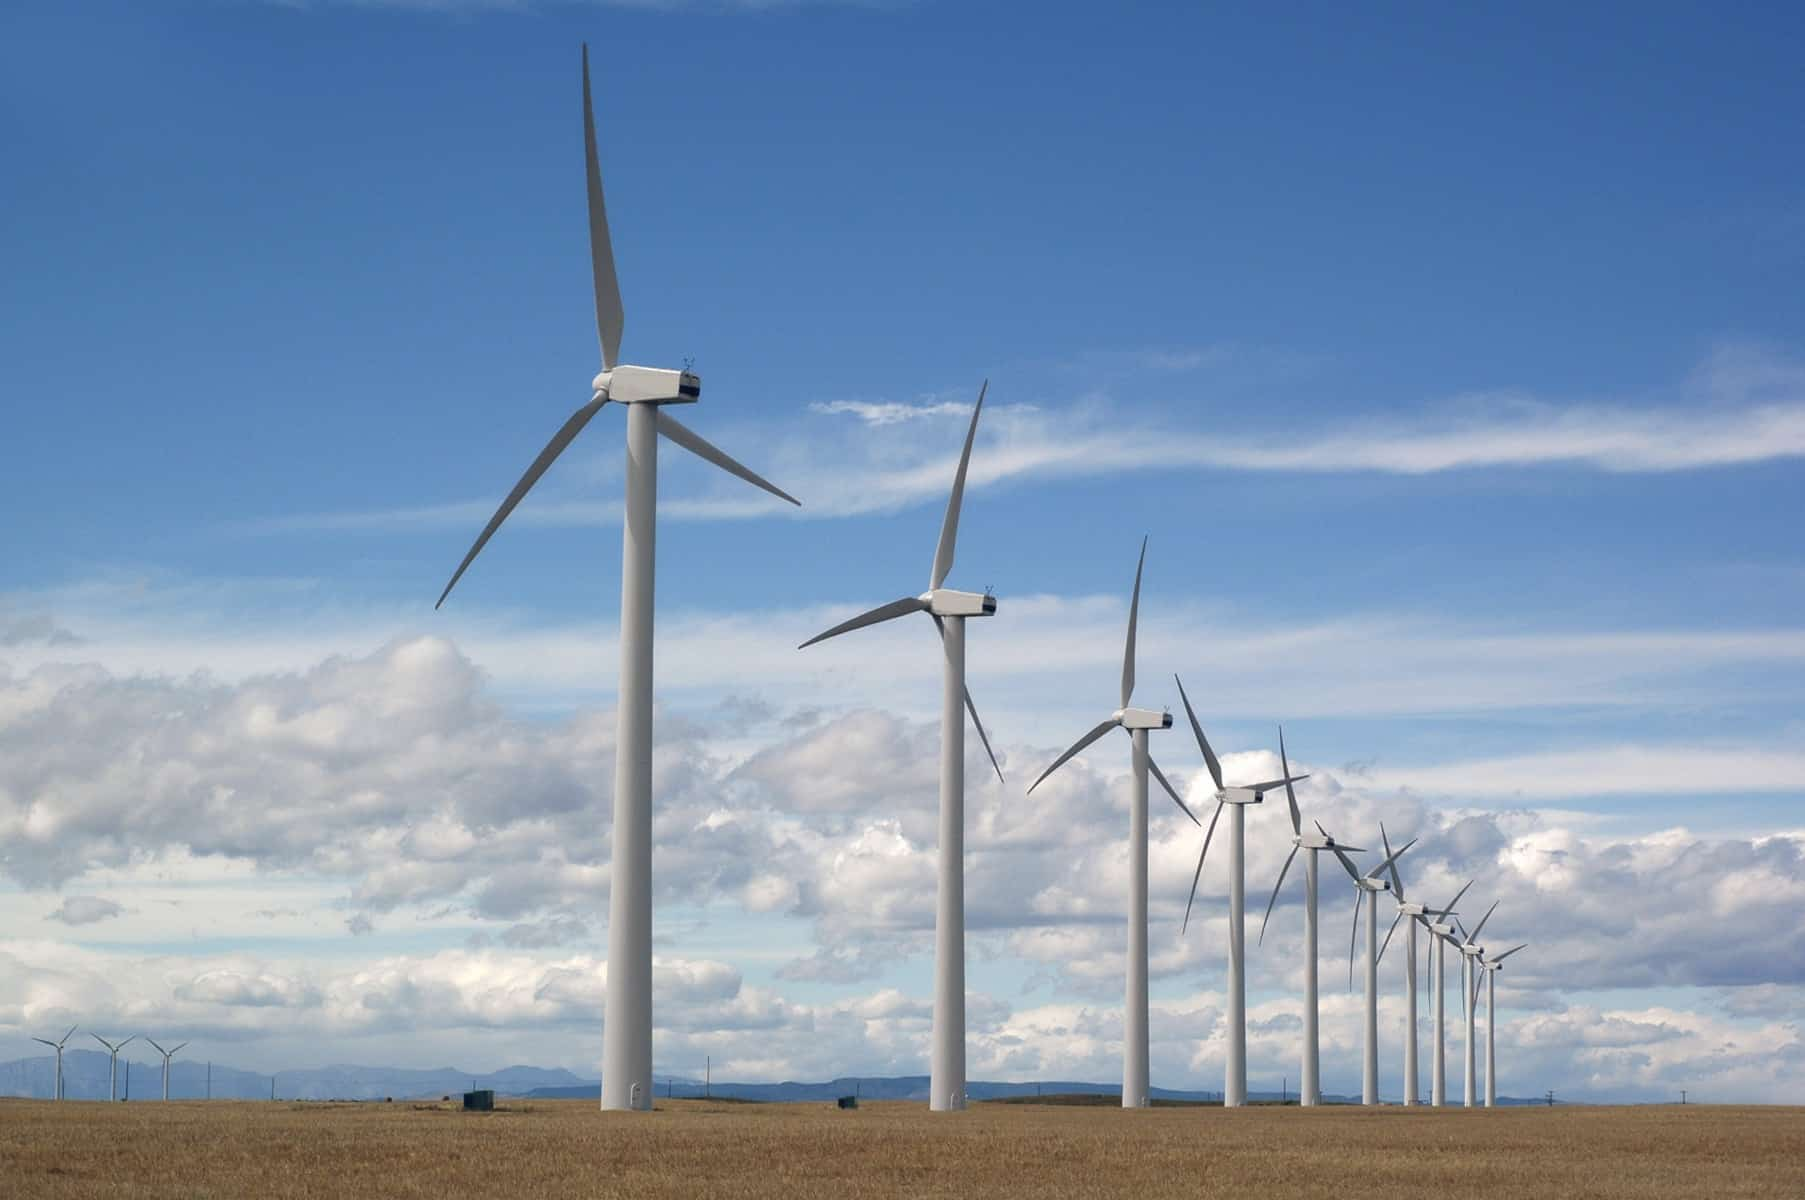 iStock 000000301417Medium - Wind Energy System Data Collection and Storage